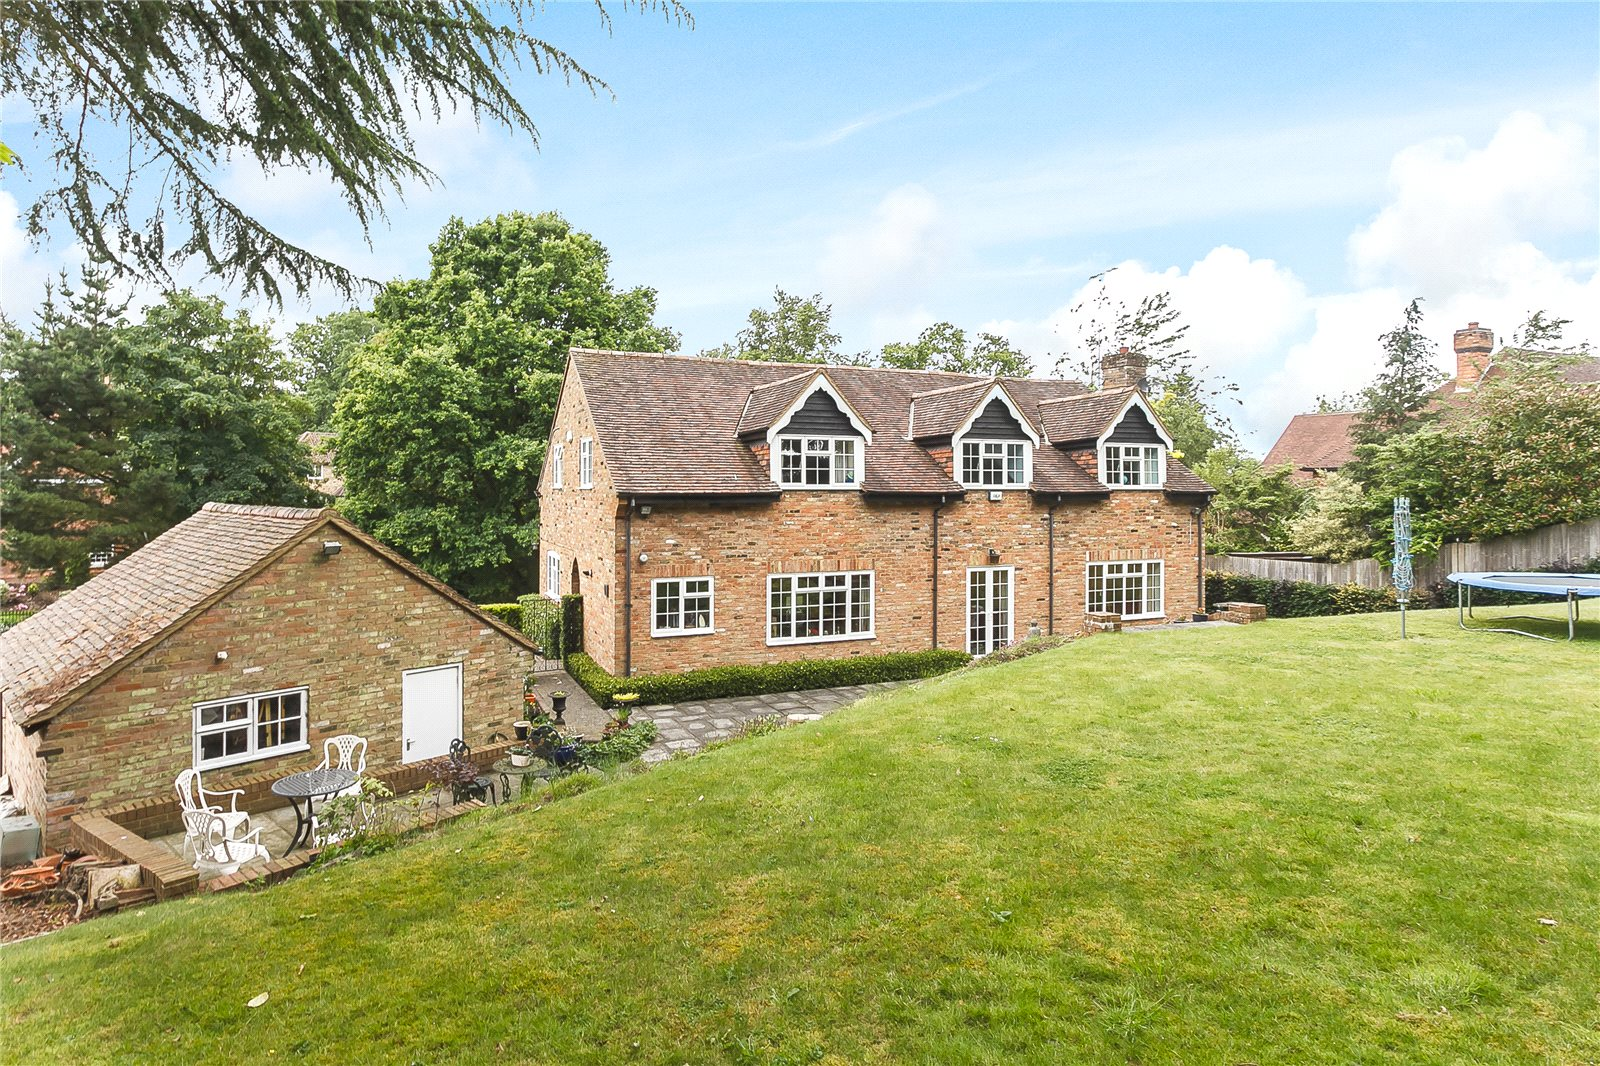 Maison unifamiliale pour l Vente à Camp Road, Gerrards Cross, Buckinghamshire, SL9 Gerrards Cross, Angleterre